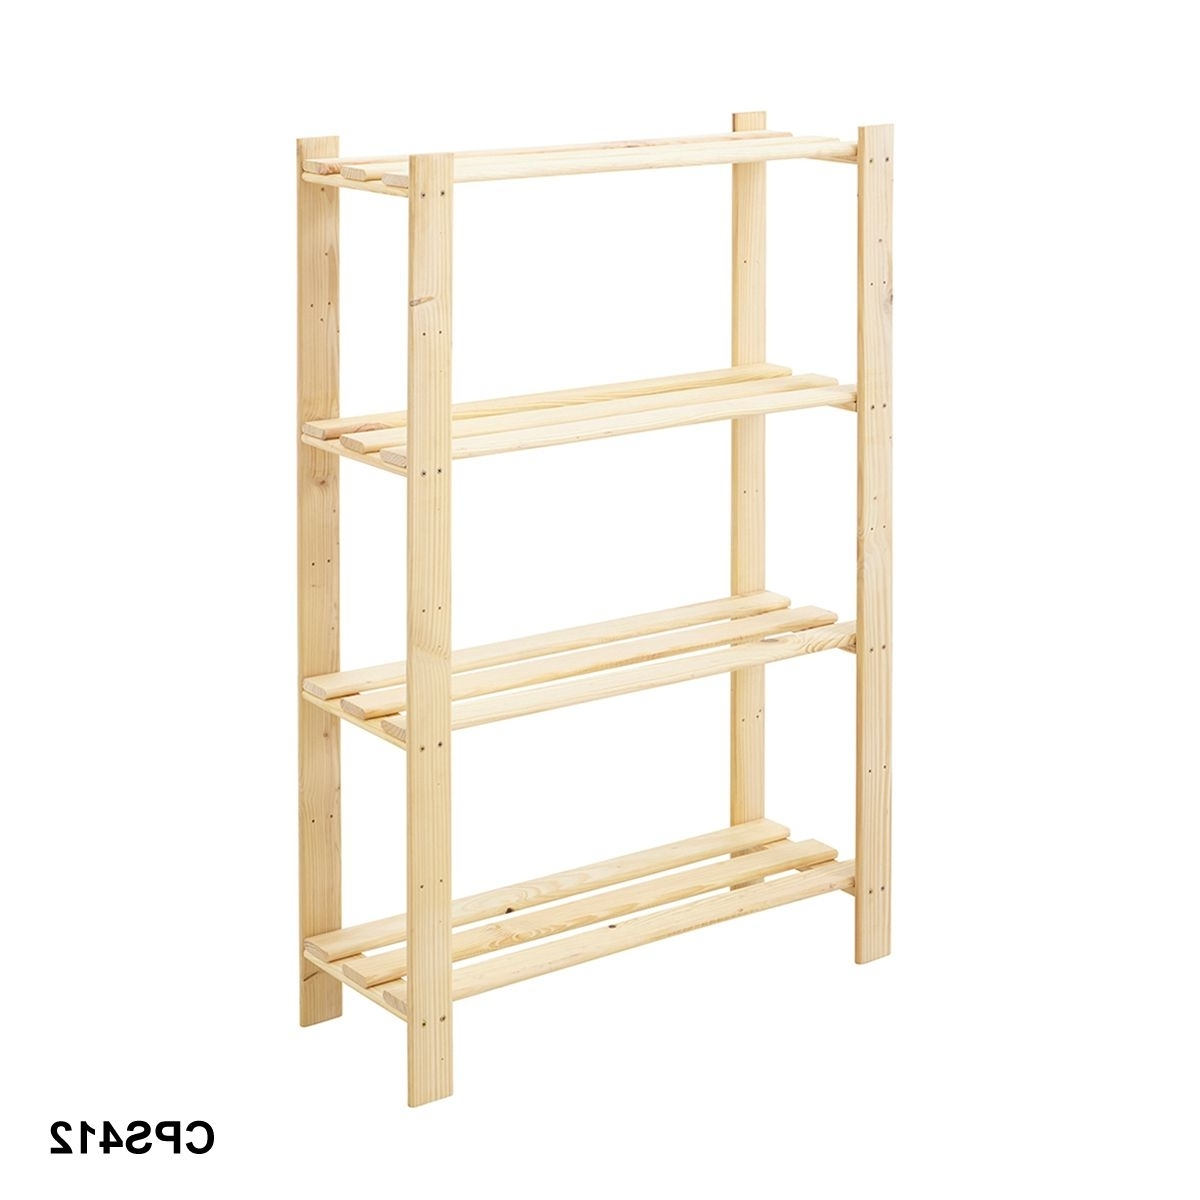 Wooden Shelving Units In Newest First Pine Wood Shelving Unit Stor Pine Shelving To Creative Tier (View 12 of 15)